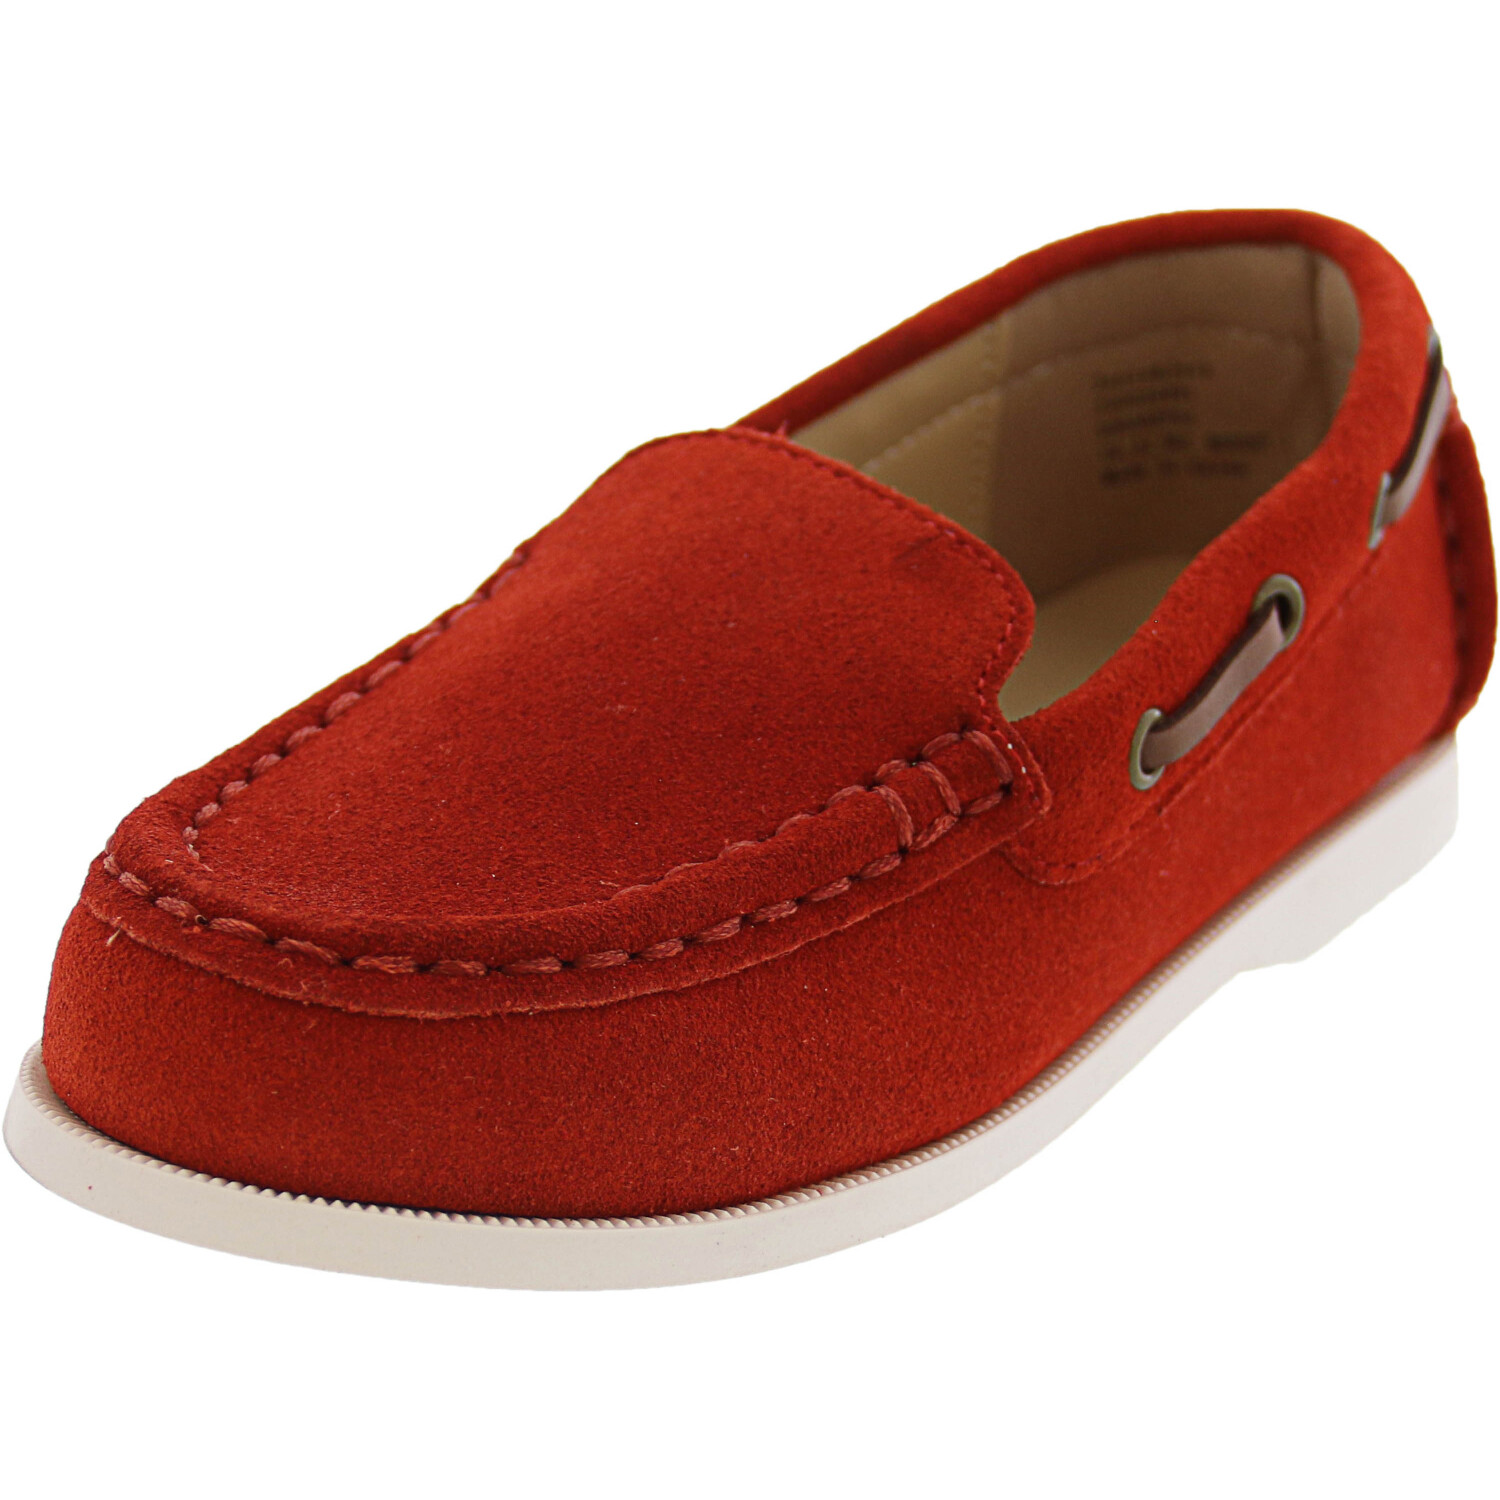 Janie And Jack Suede Driving Shoe Ankle-High Leather Moccasins - 9M - Red Orange